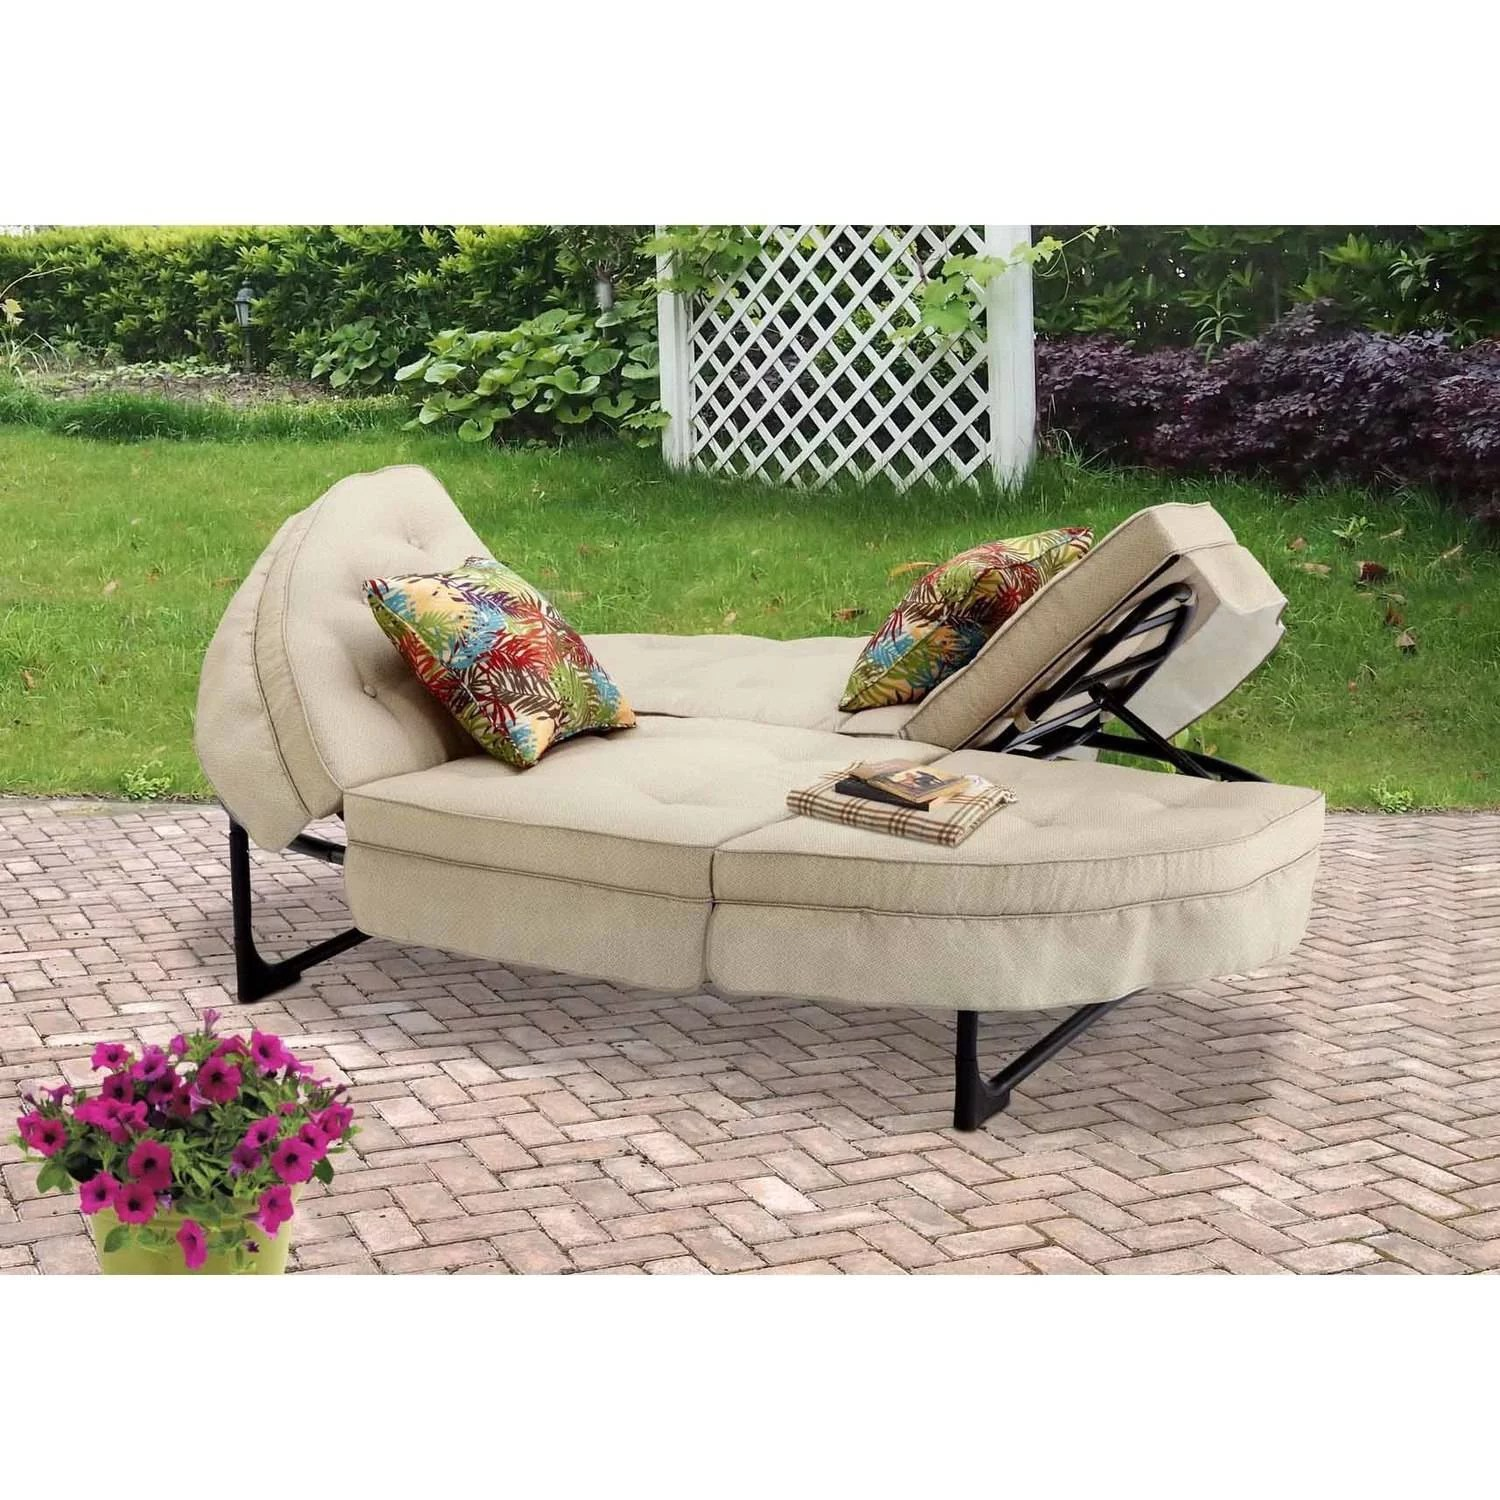 lounge chair walmart big bean bag chairs better homes and gardens clayton court chaise with